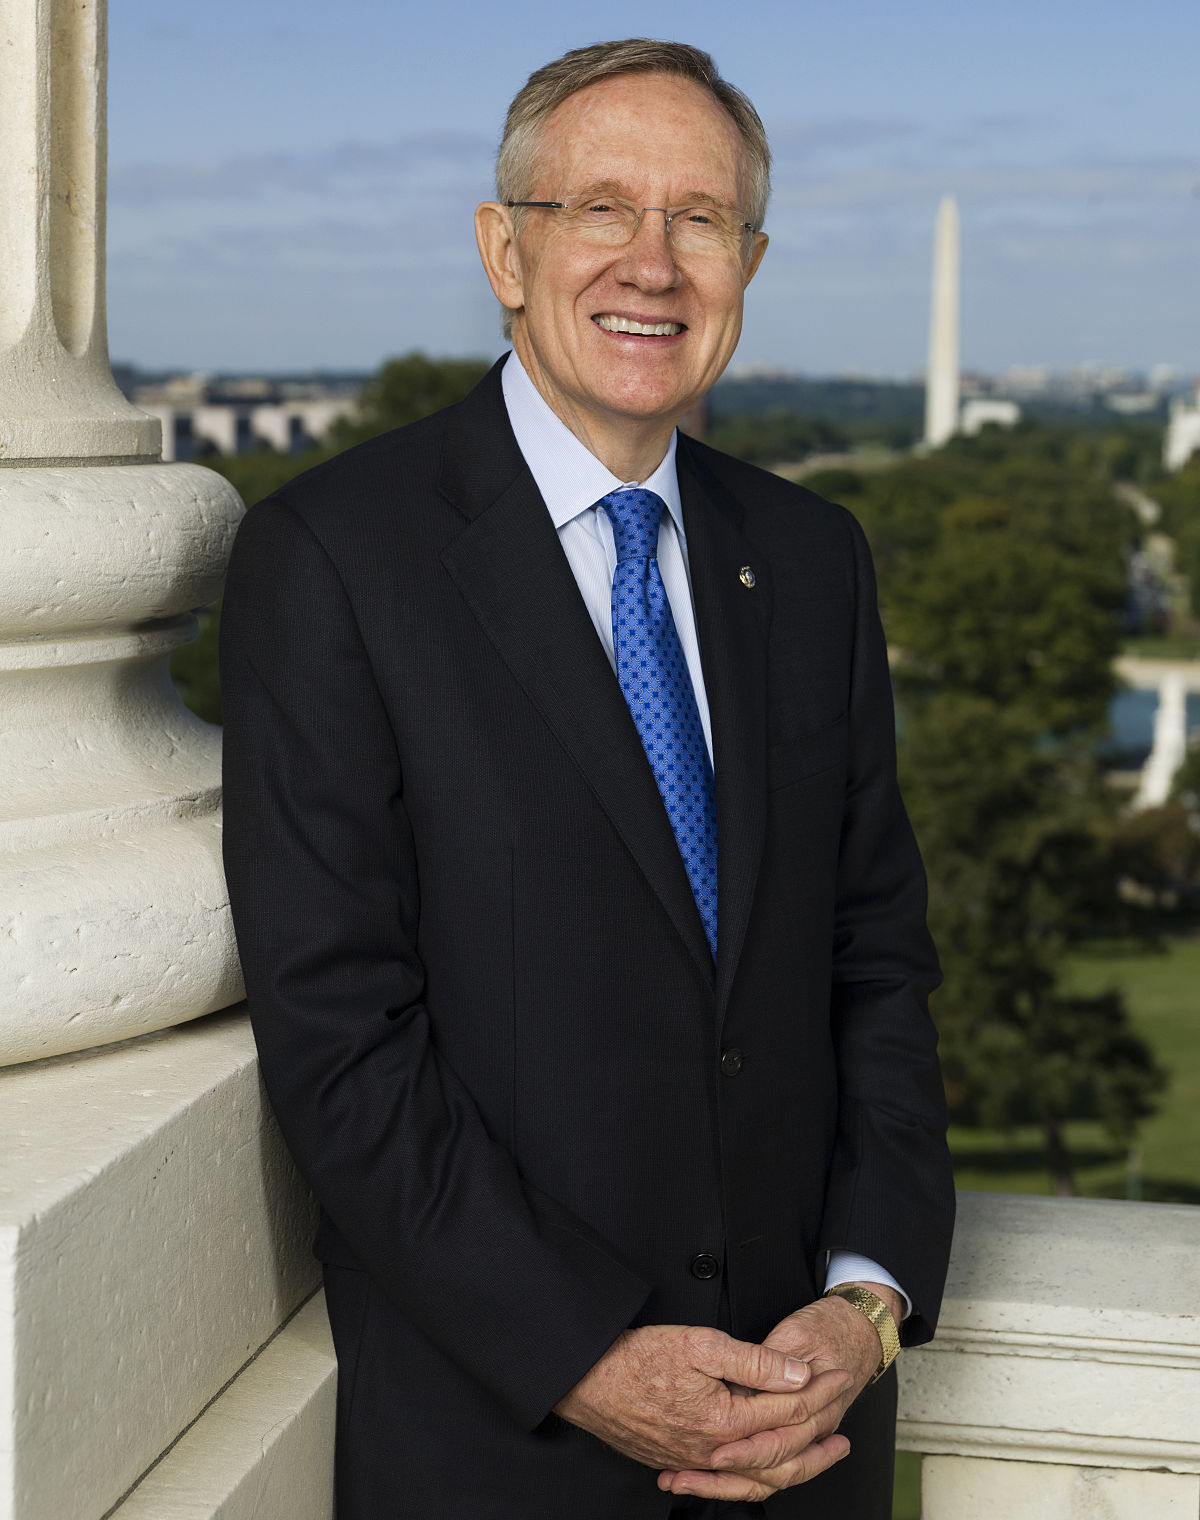 Harry Reid Wikipedia